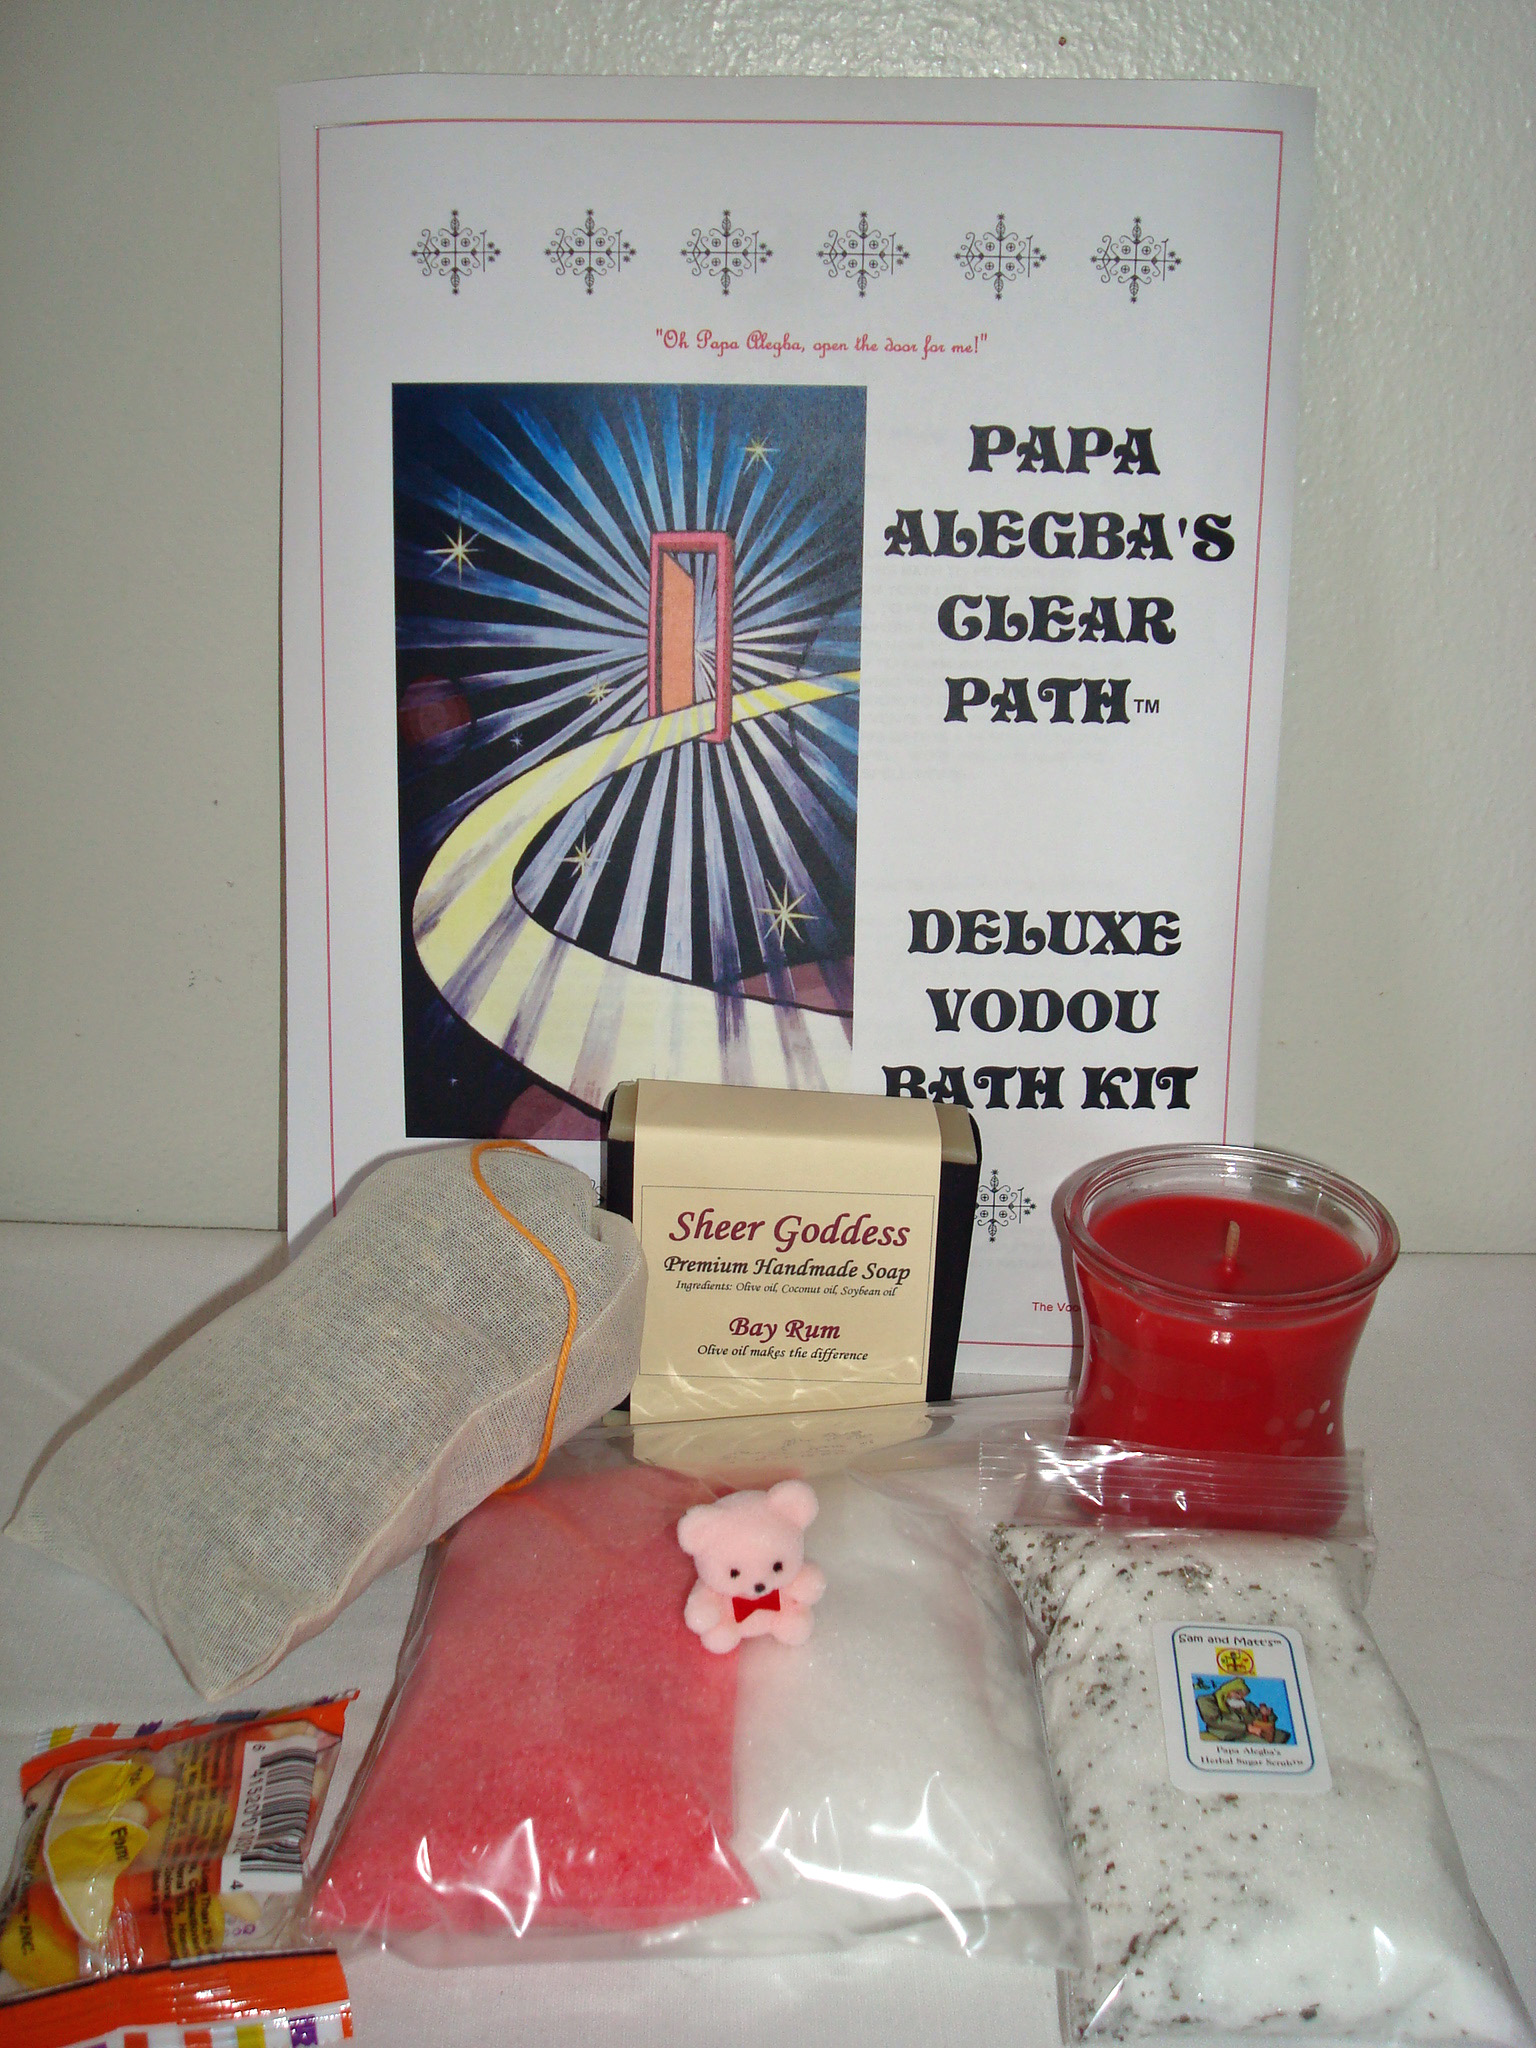 traditional Vodou bath for Papa Legba